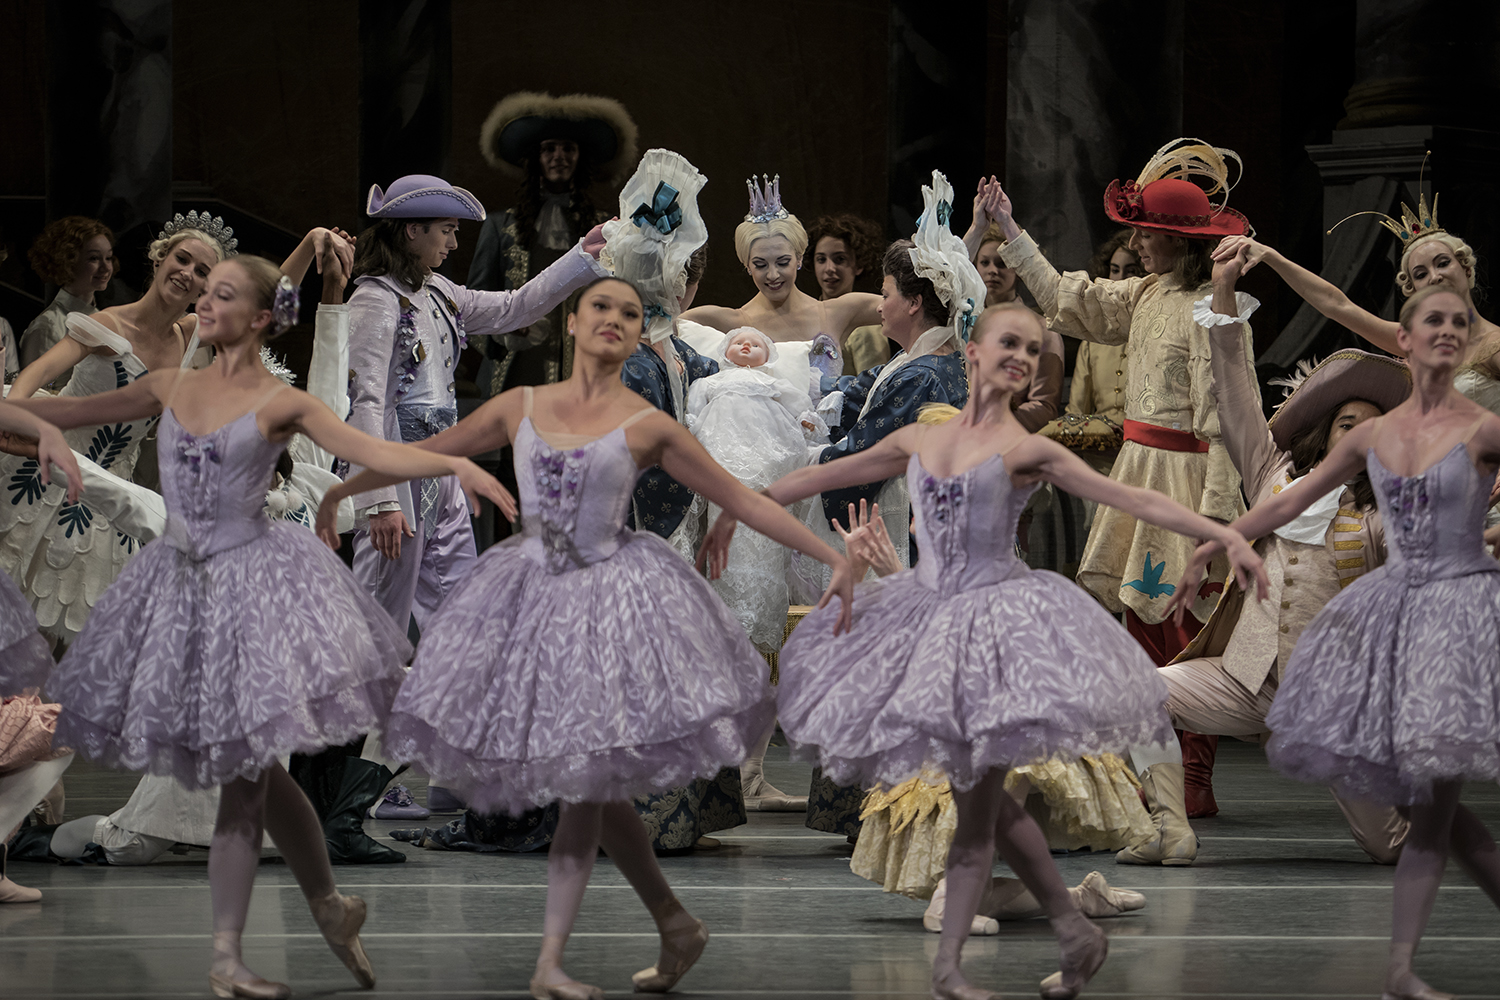 the American Ballet Theater's performance of The Sleeping Beauty on Thursday, Mar. 31, 2016 at the Detroit Opera House in Detroit. Tim Galloway/Special for DFP